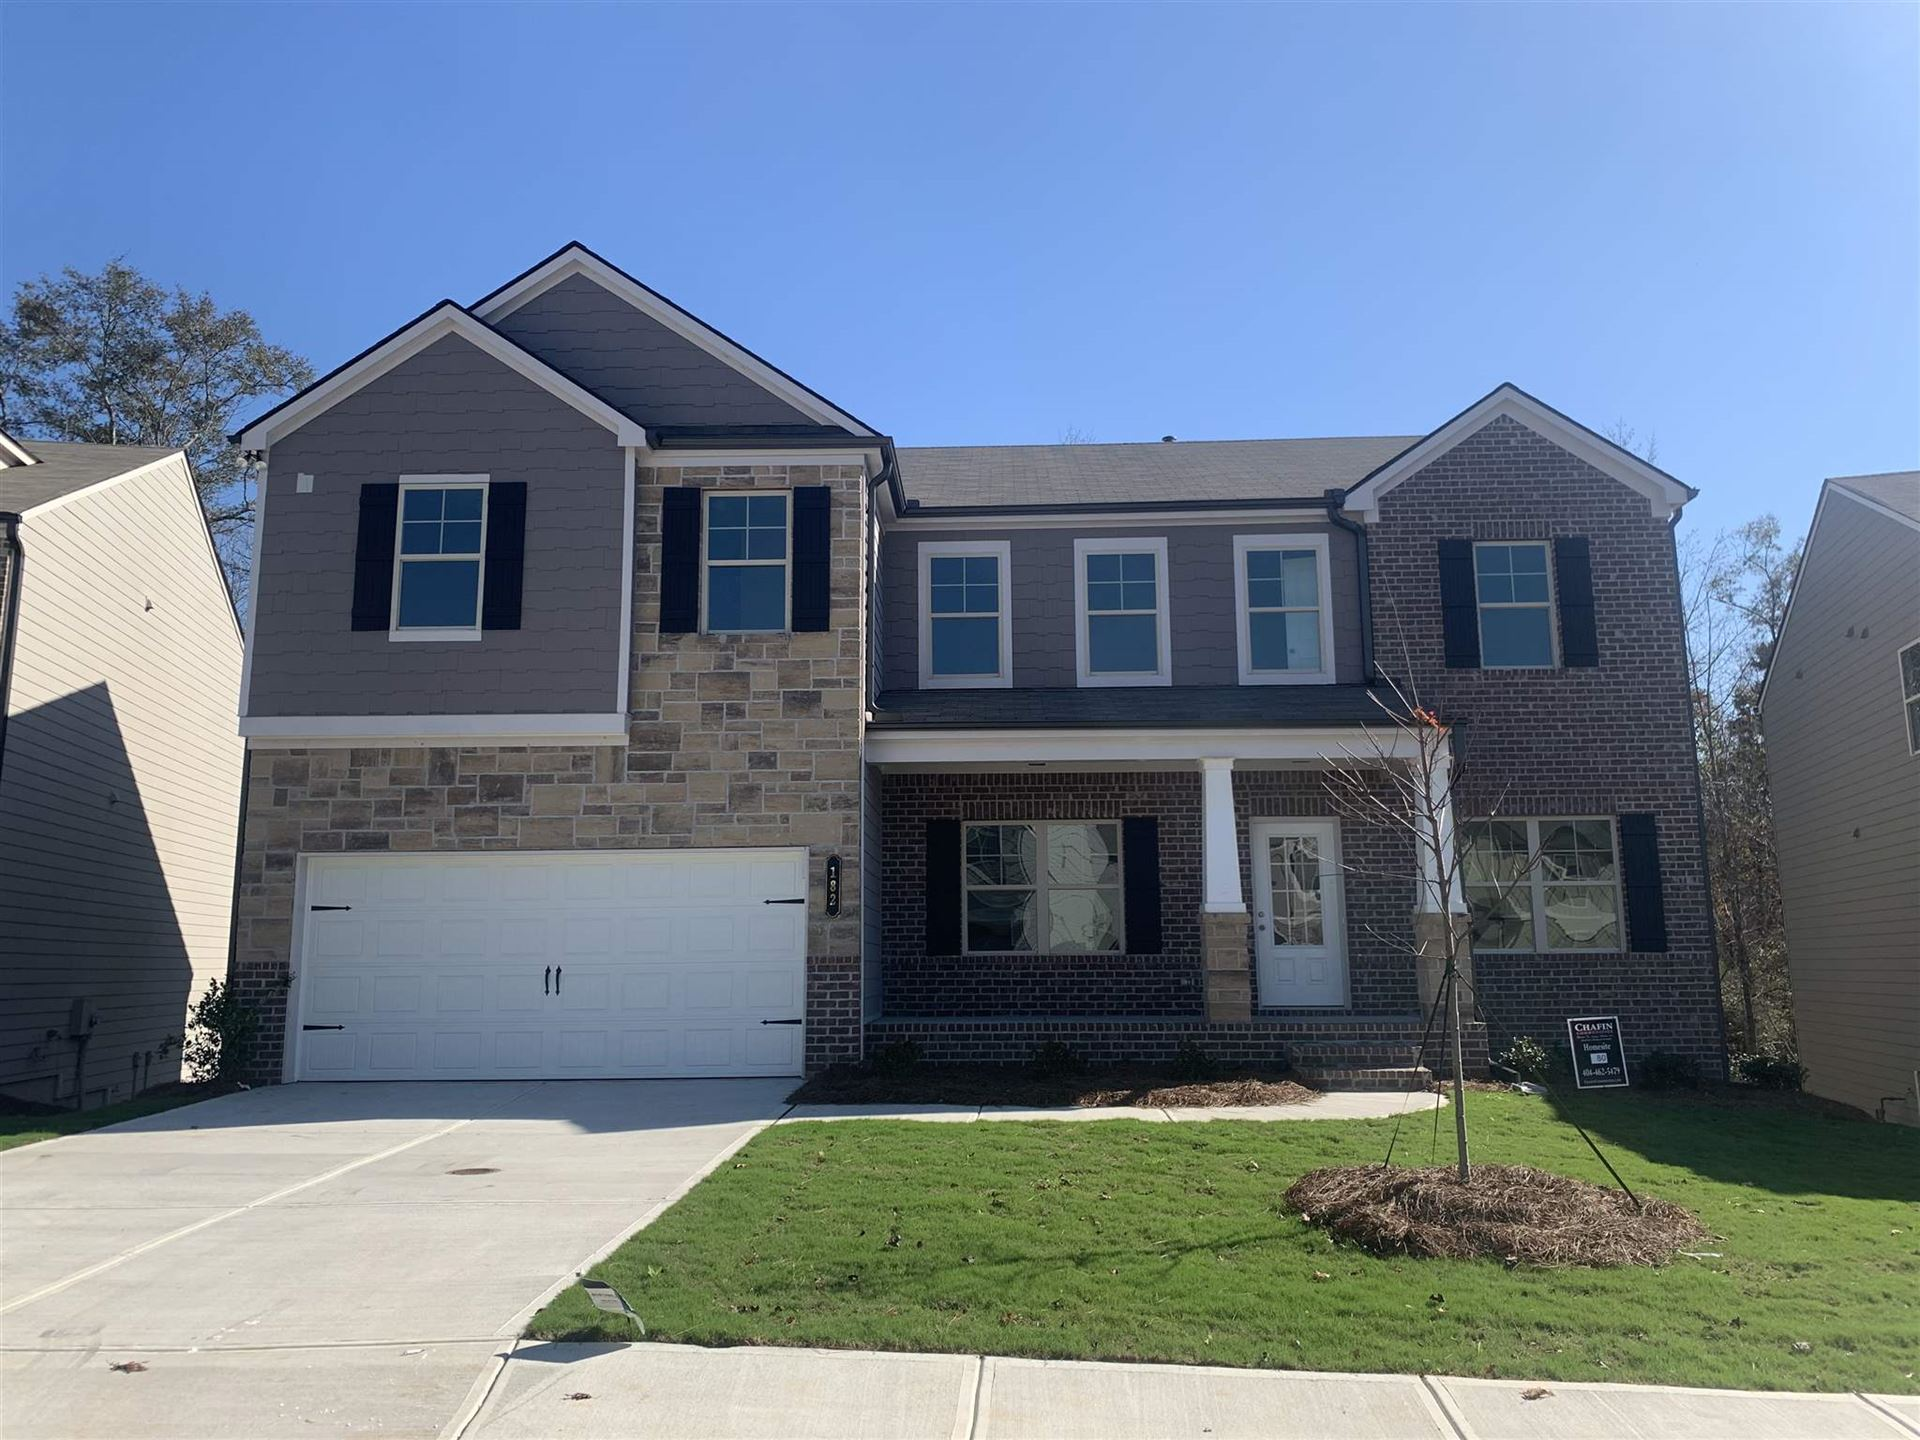 182 Creekside Bluff Way, Auburn, GA 30011 - MLS#: 8795527